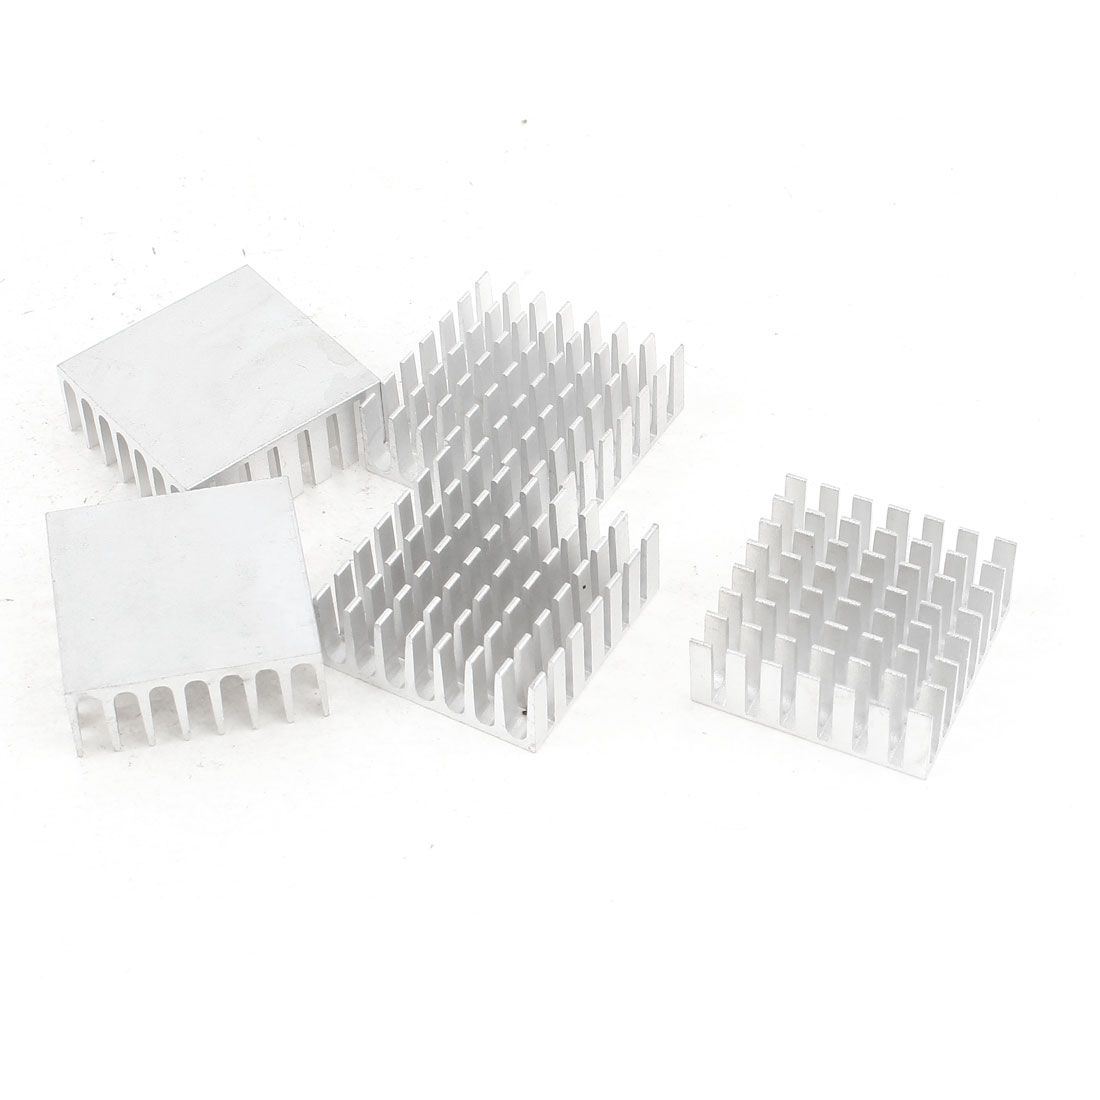 5 Pcs Silver Tone Aluminum Cooler Radiator Heat Sink Heatsink 28mm x 28mm x 11mm